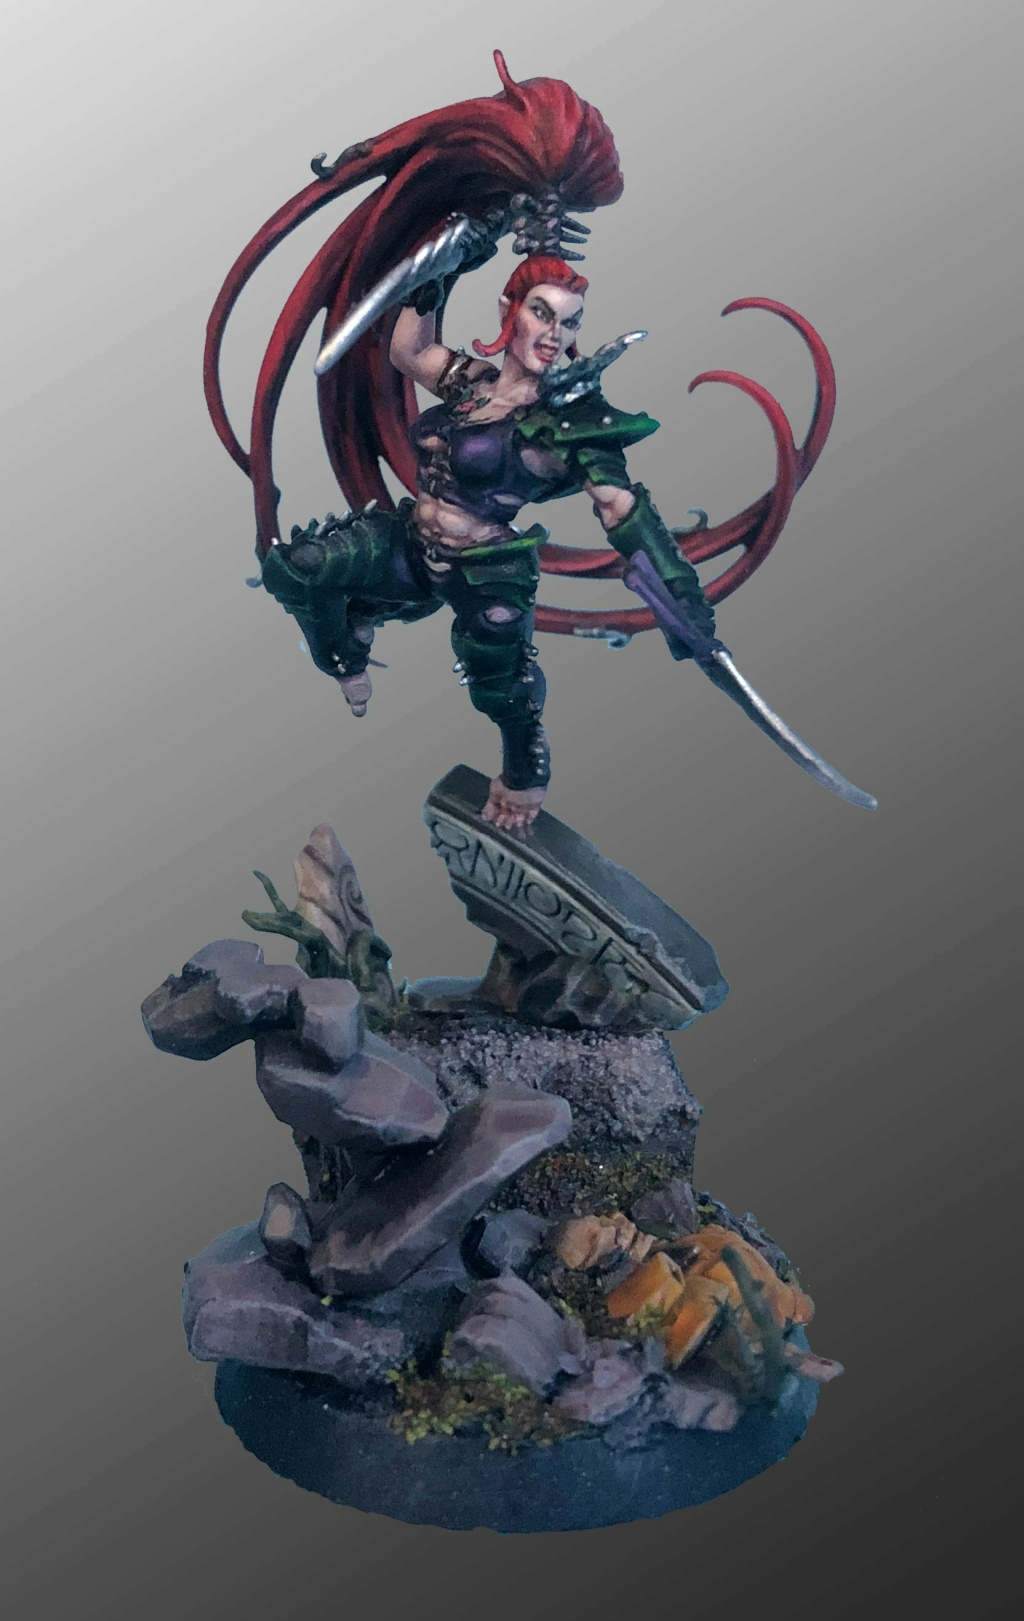 Big fan of the new Lilith model Lelith12